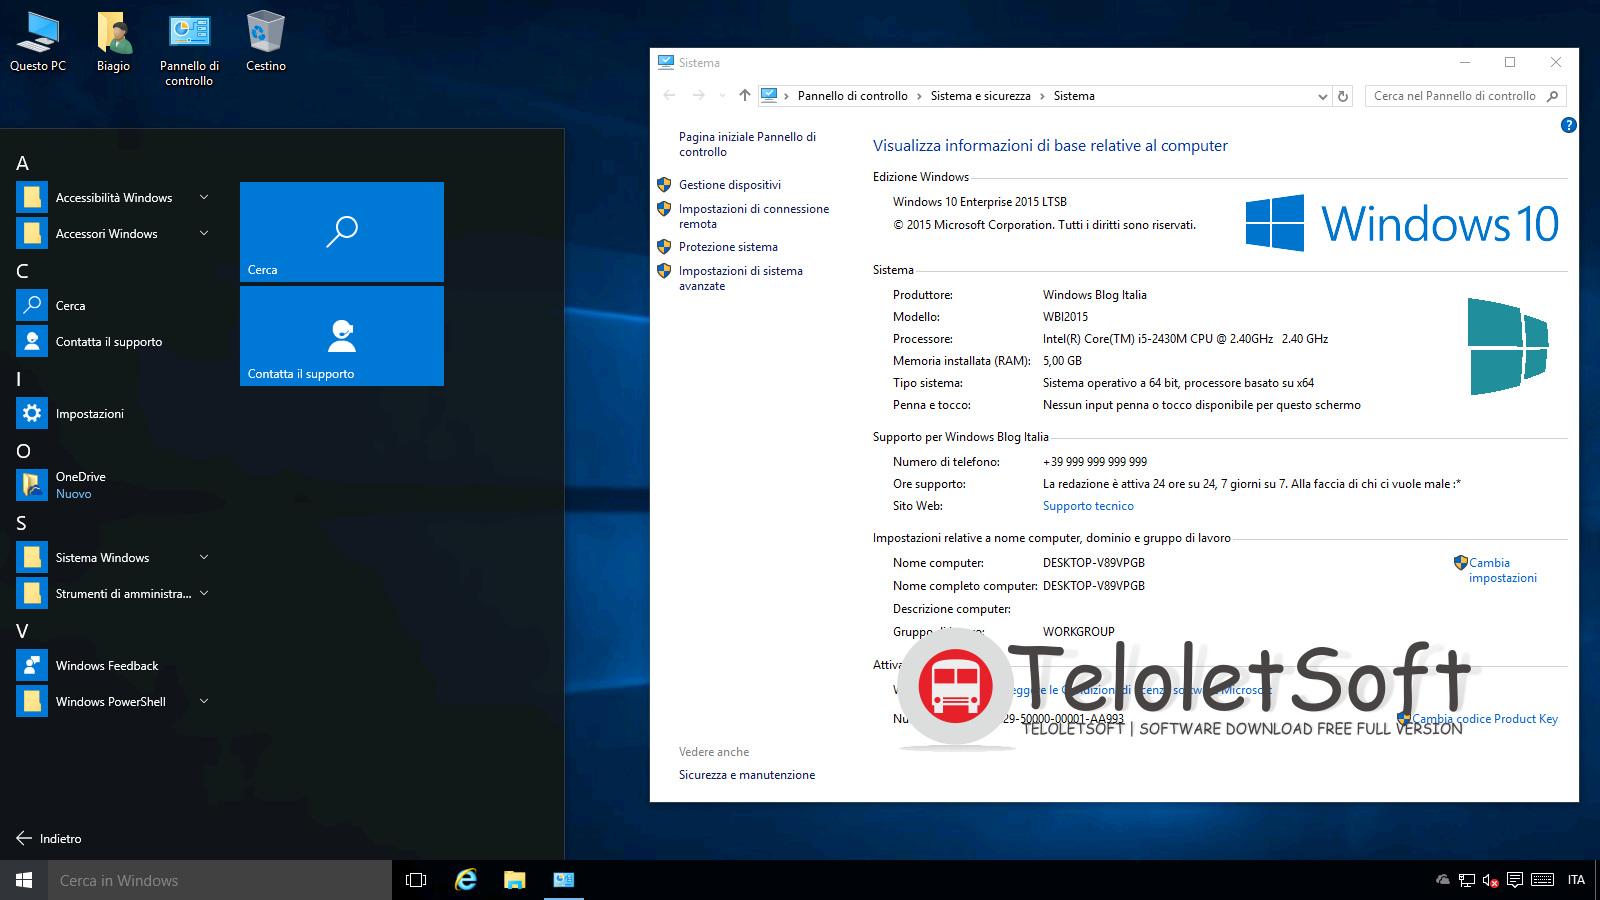 windows 10 64 bits iso 1 link